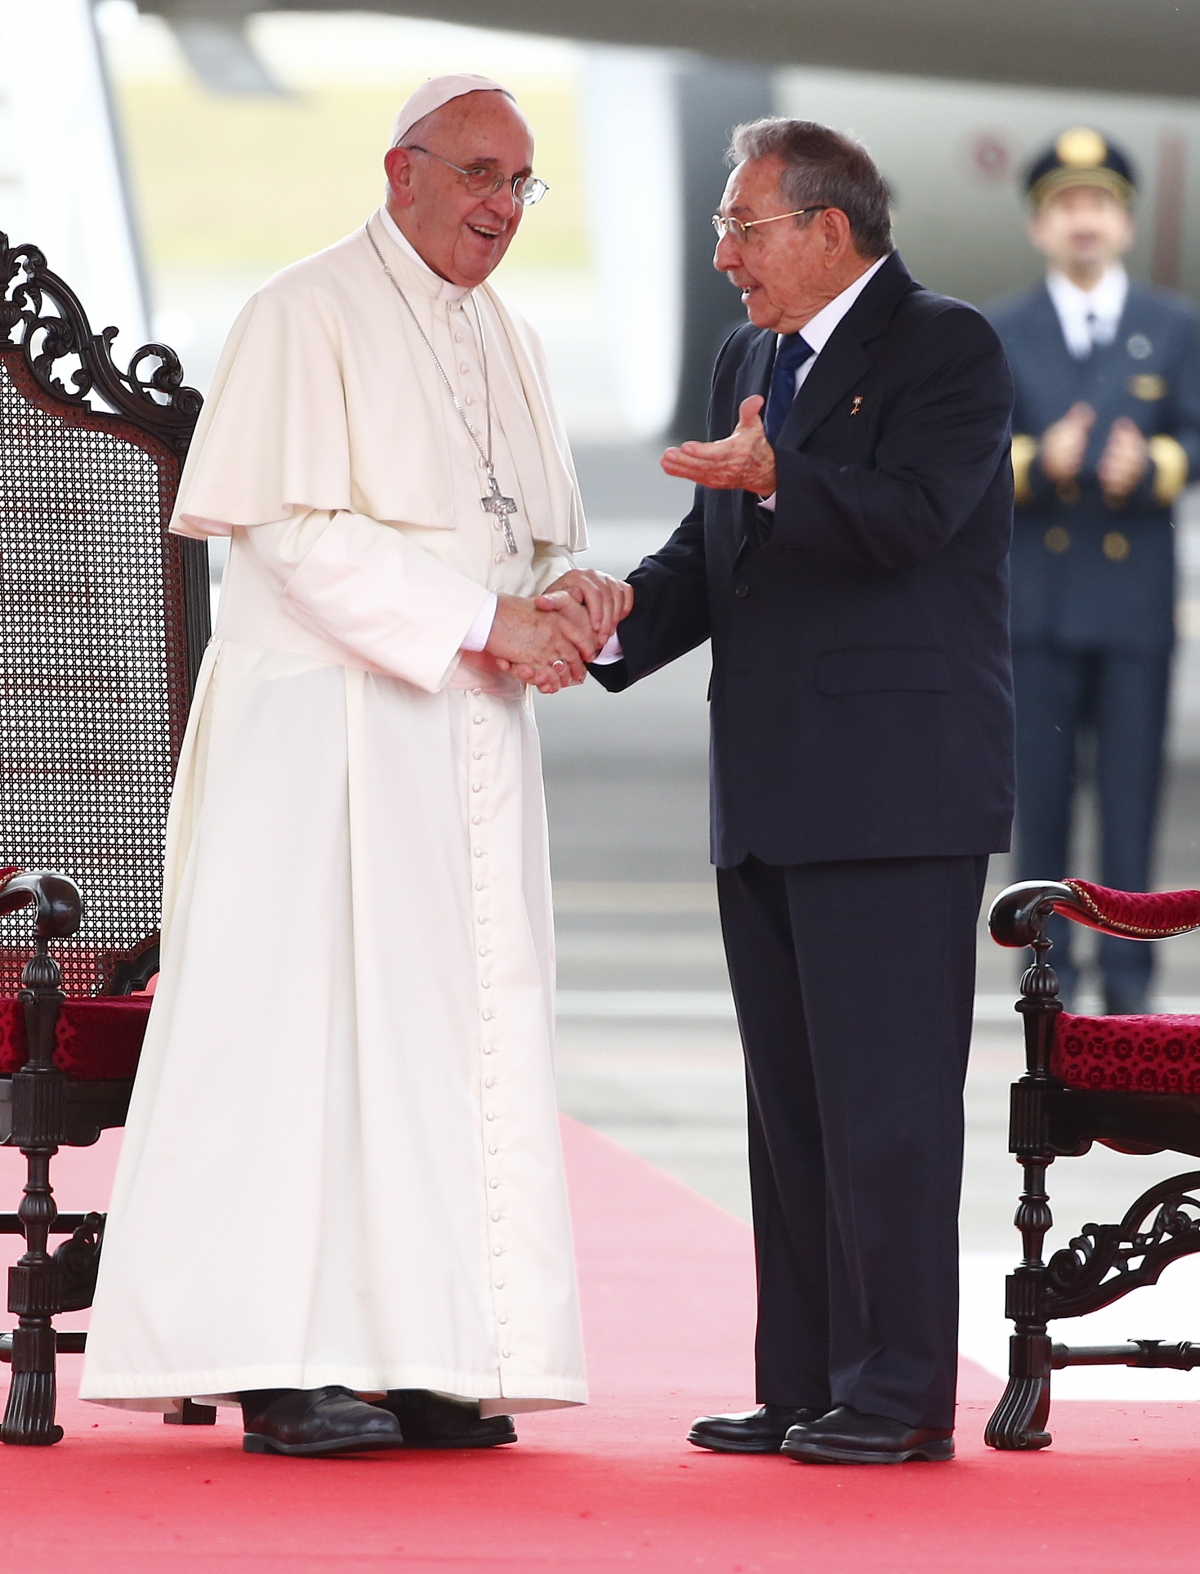 Pope Francis with Raul Castro